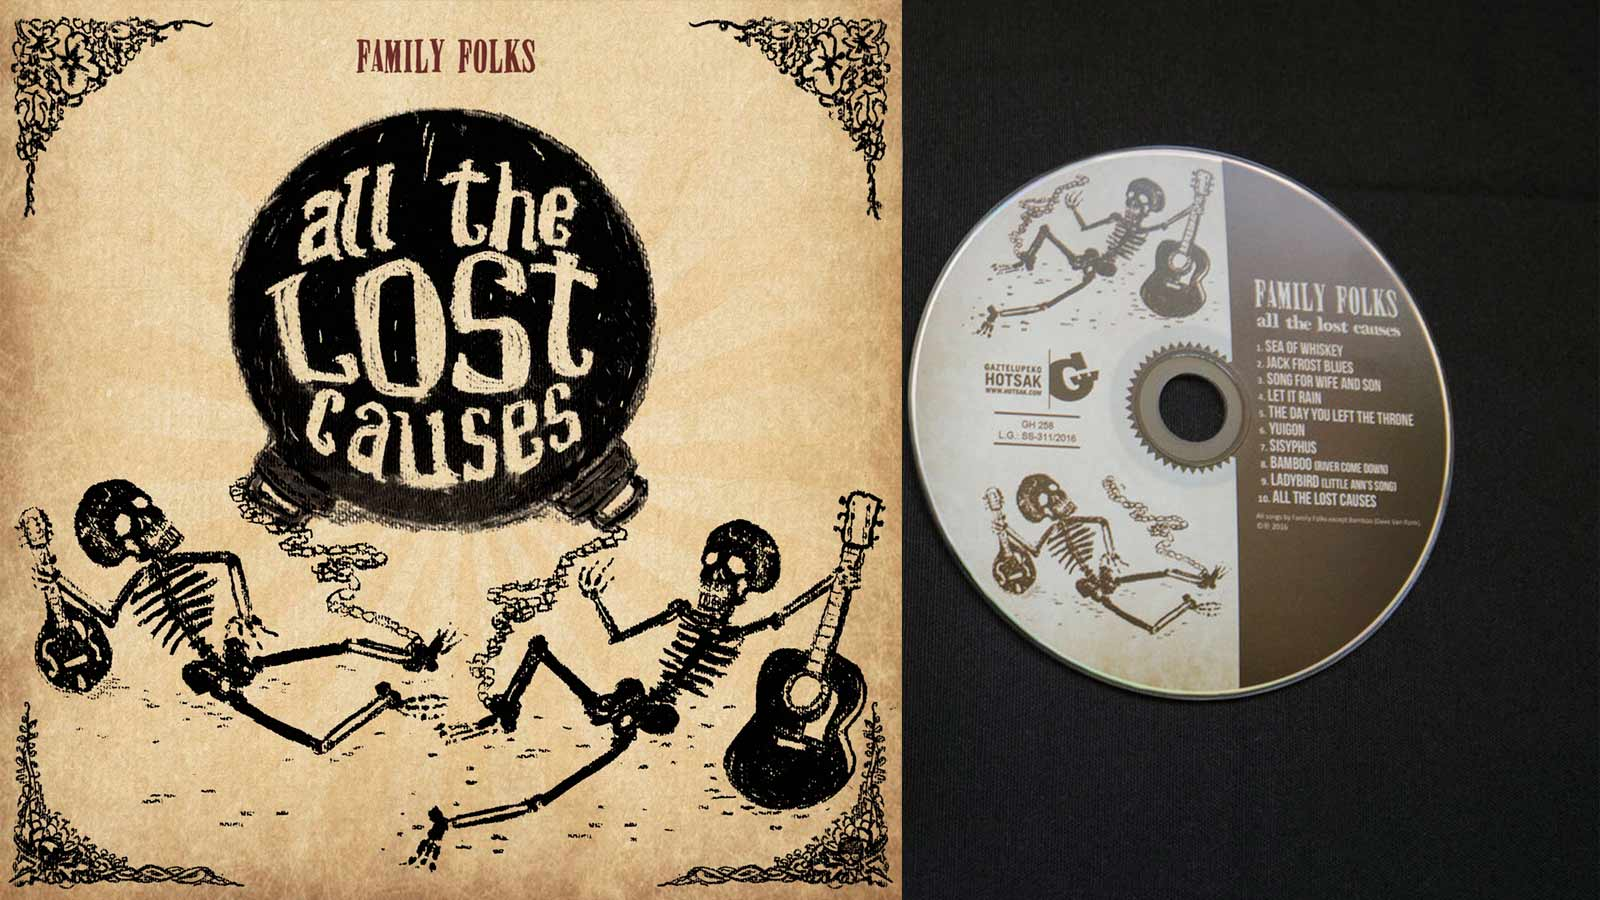 Las causas perdidas de Family Folks. Album debut.